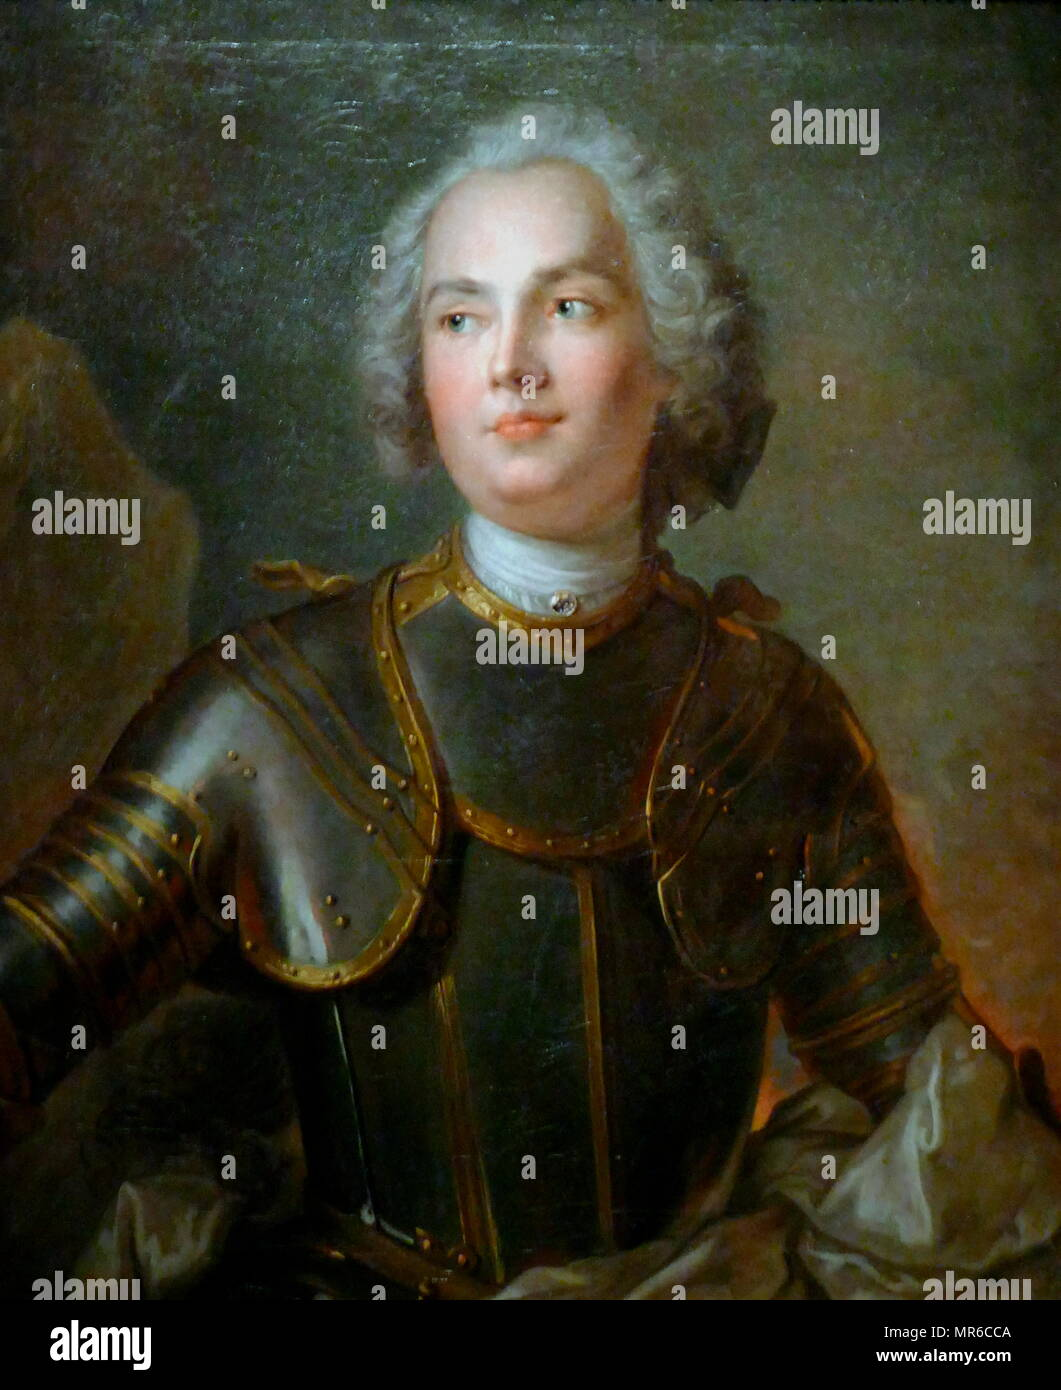 Adam Tarło (1713–1744); Polish nobleman. portrait by Jean-Marc Nattier (1685–1766). Date circa 1740. Tarło was during the War of Polish Succession (1734-1738), a supporter of Stanisław I Leszczyński and was commander of partisans of the short-lived Dzikow Confederation. He was killed by Count Kazimierz Poniatowski in a duel in 1744 - Stock Image